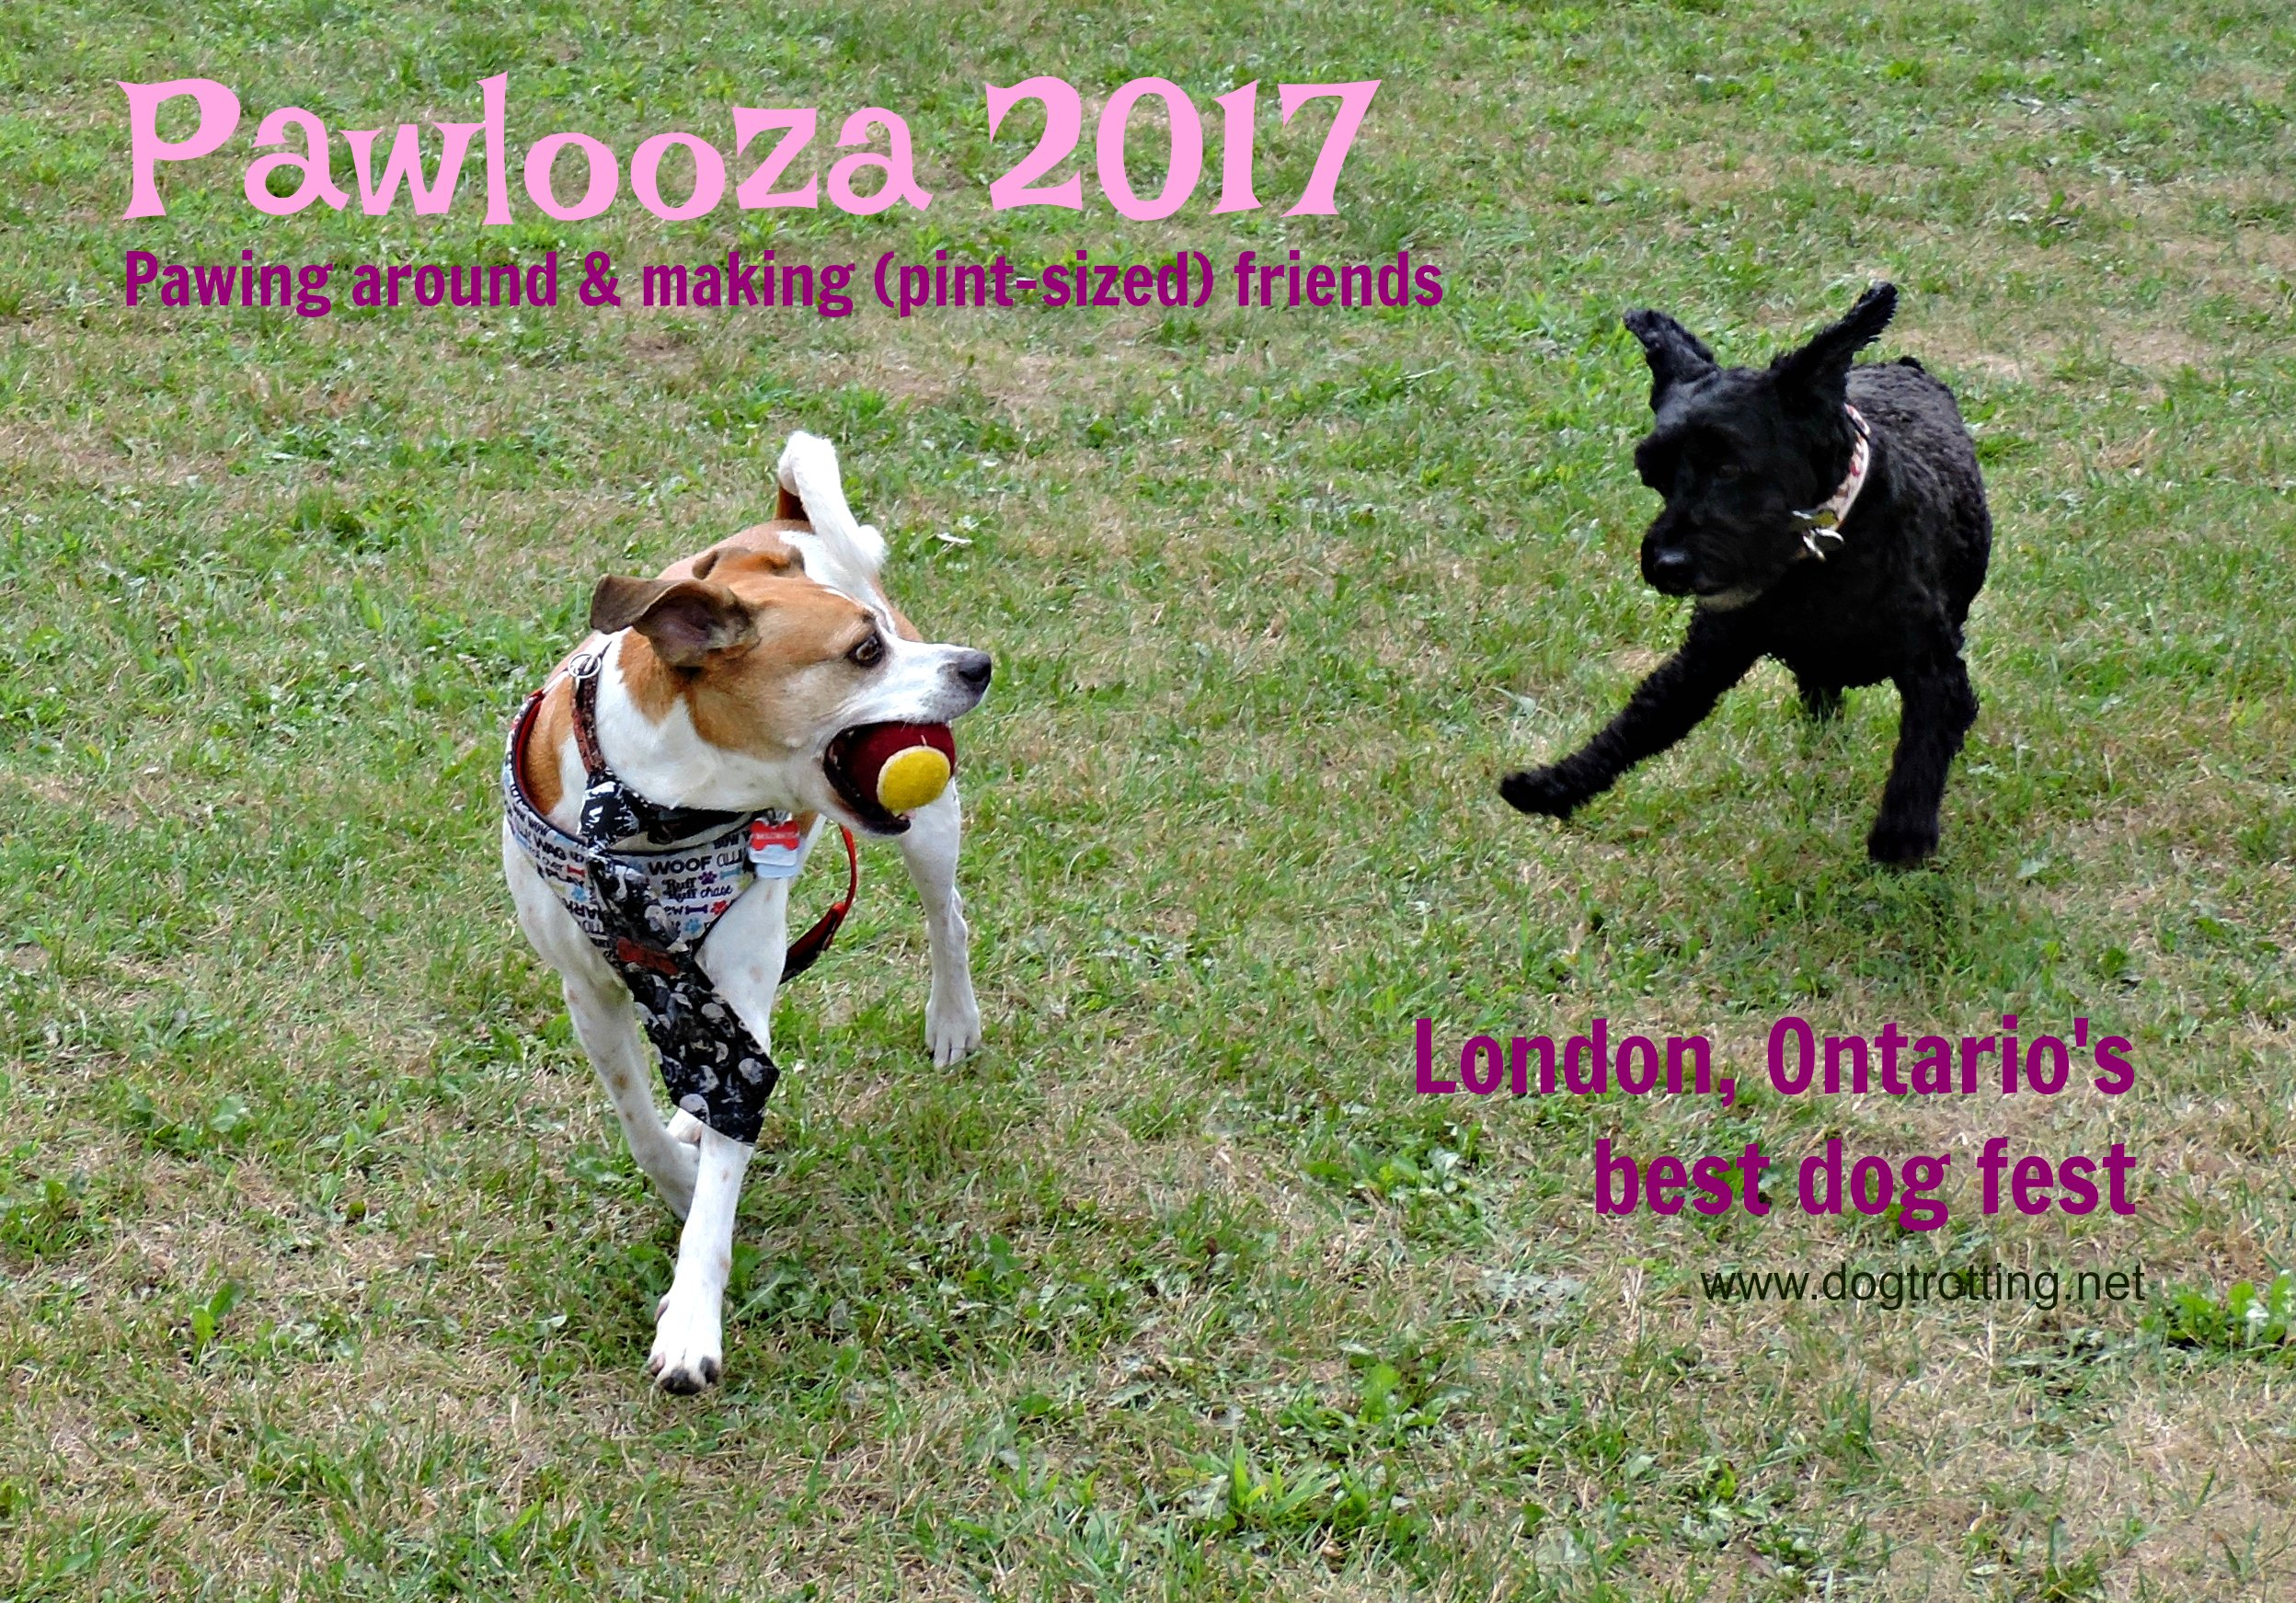 Dogs at Pawlooza 2017 dogtrotting.net